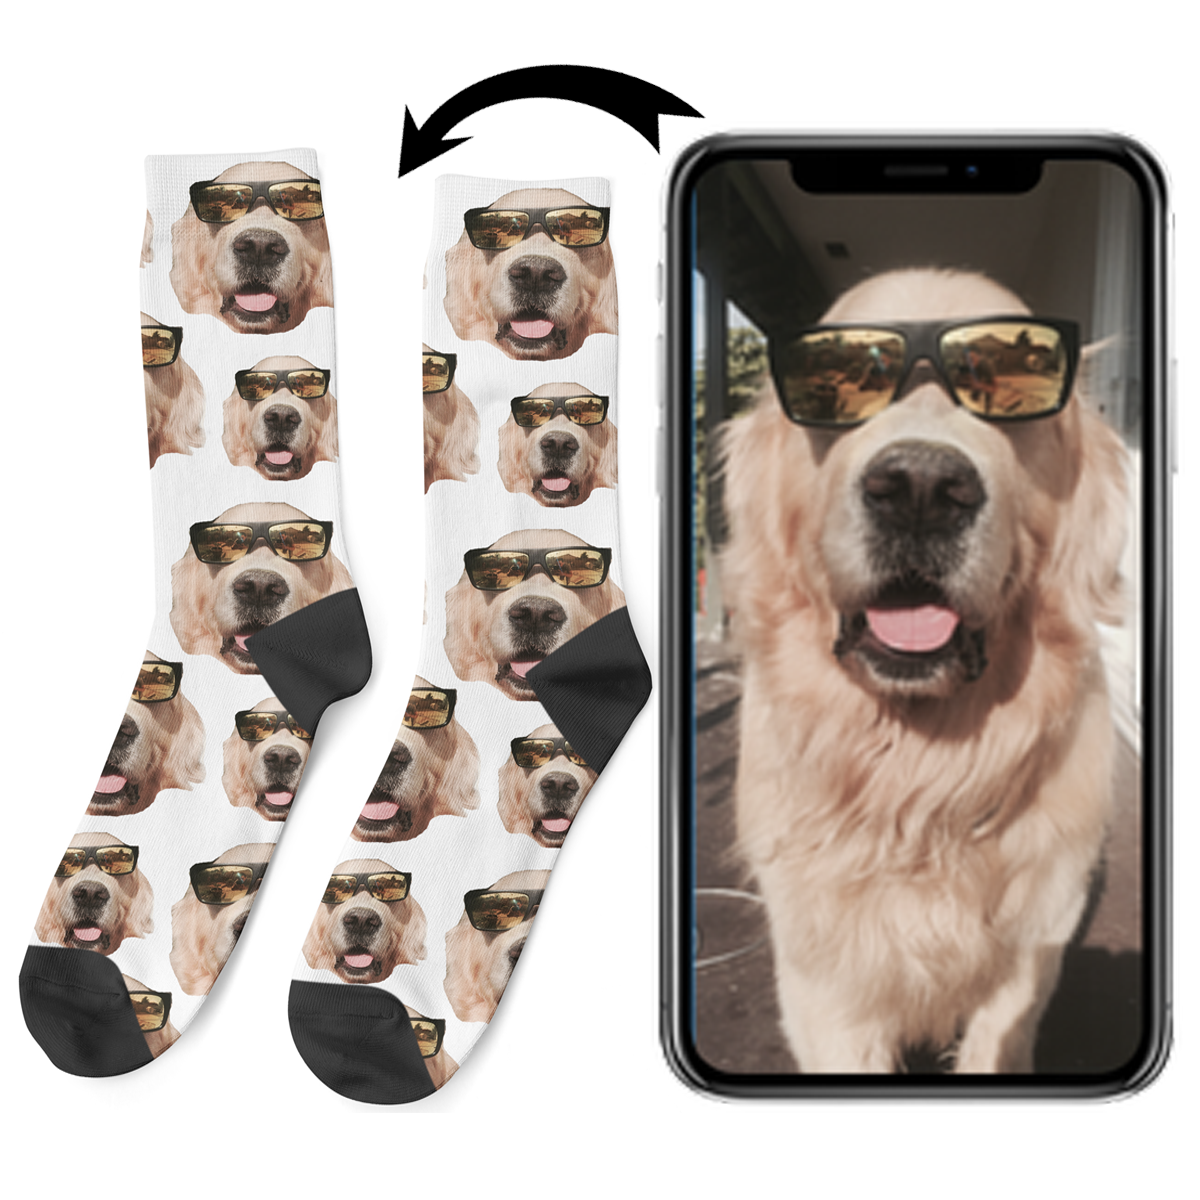 How to put your dogs face on socks from a photo